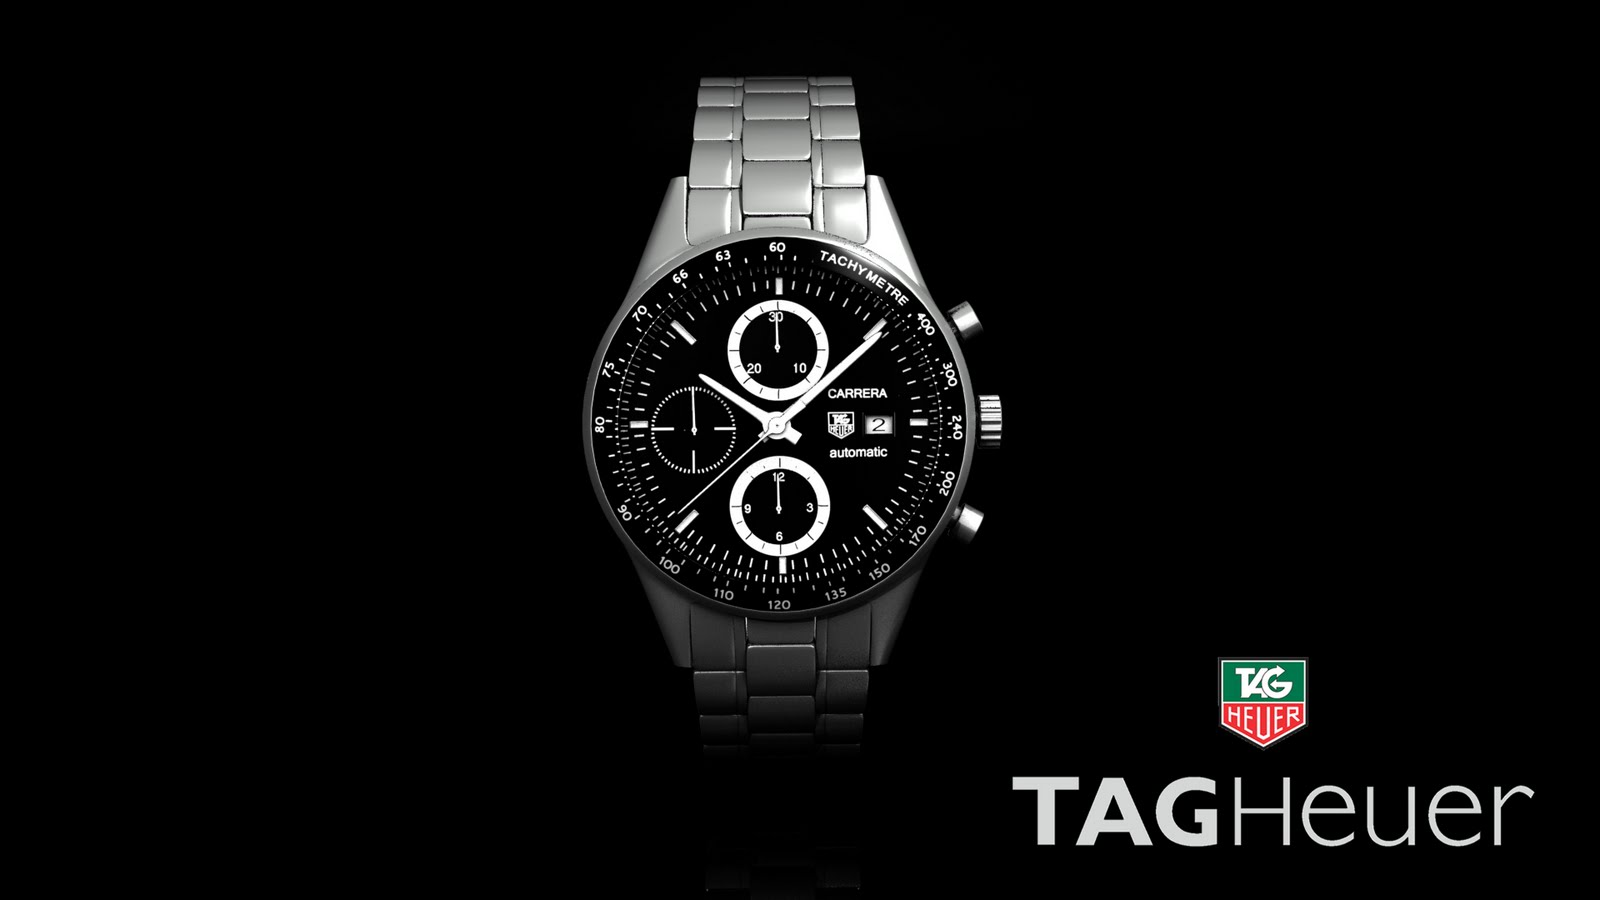 Tagheuer Watches Pricelist